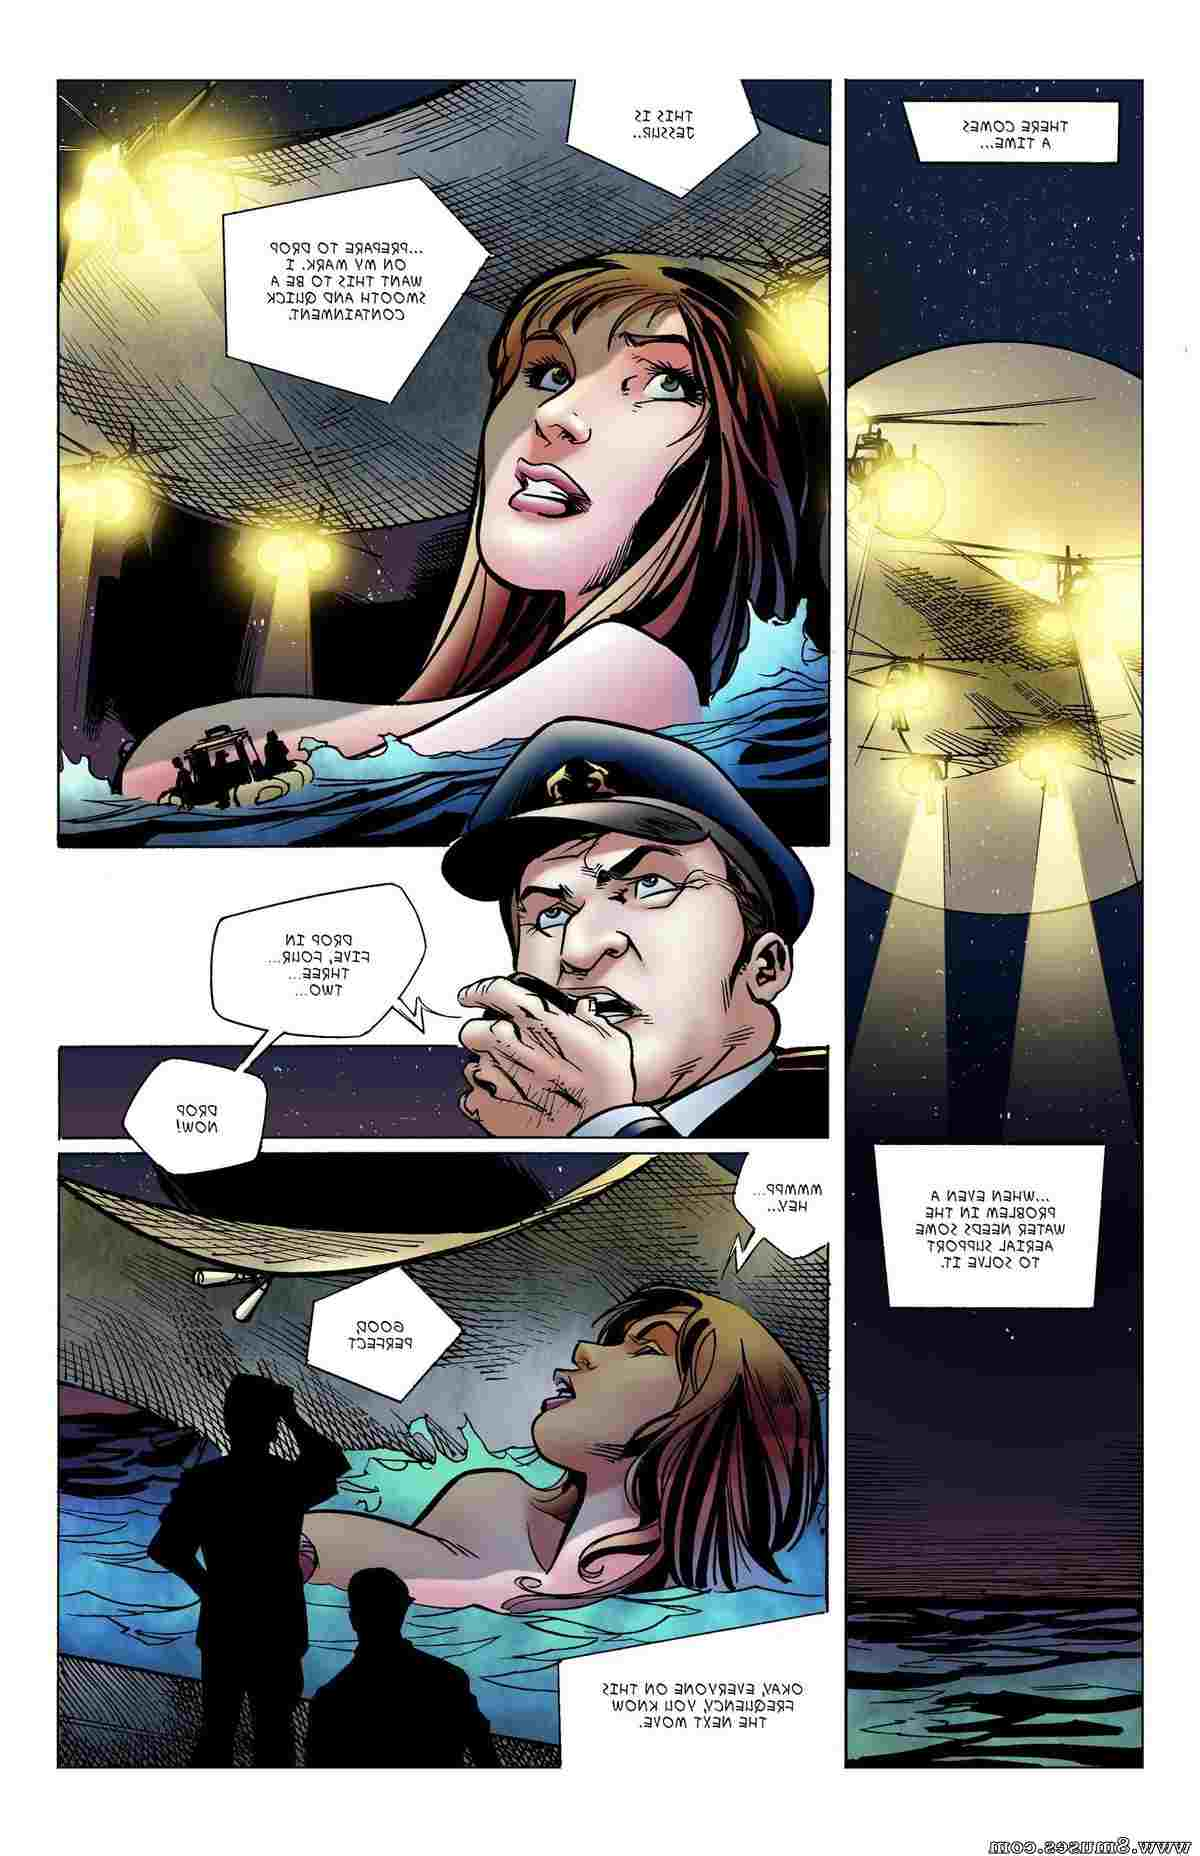 Giantess-Club-Comics/Bubbling-Up-from-the-Abyss Bubbling_Up_from_the_Abyss__8muses_-_Sex_and_Porn_Comics_63.jpg